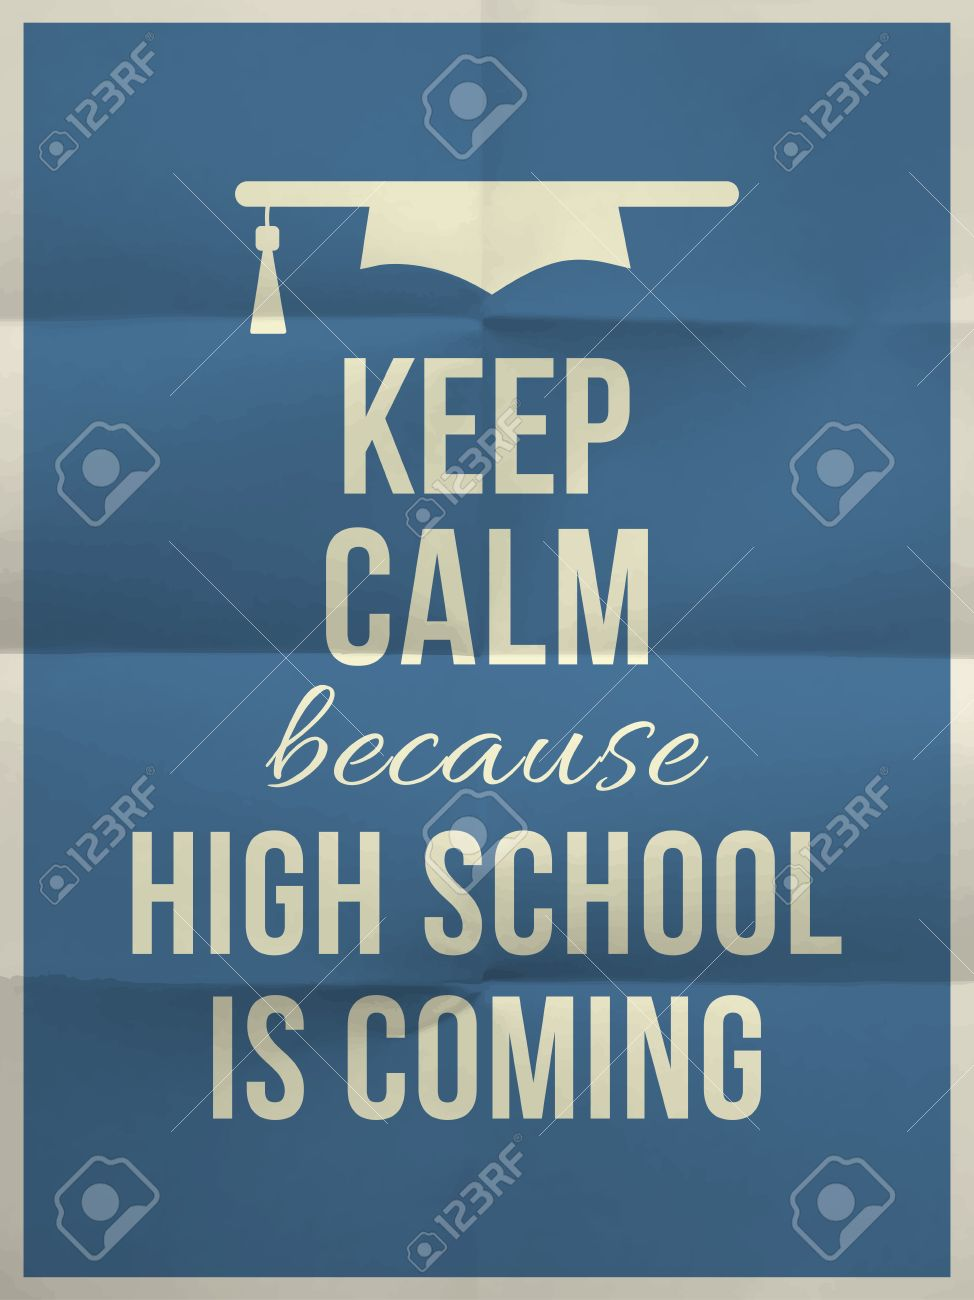 Keep Calm High School Is Coming Design Typographic Quote On Dark